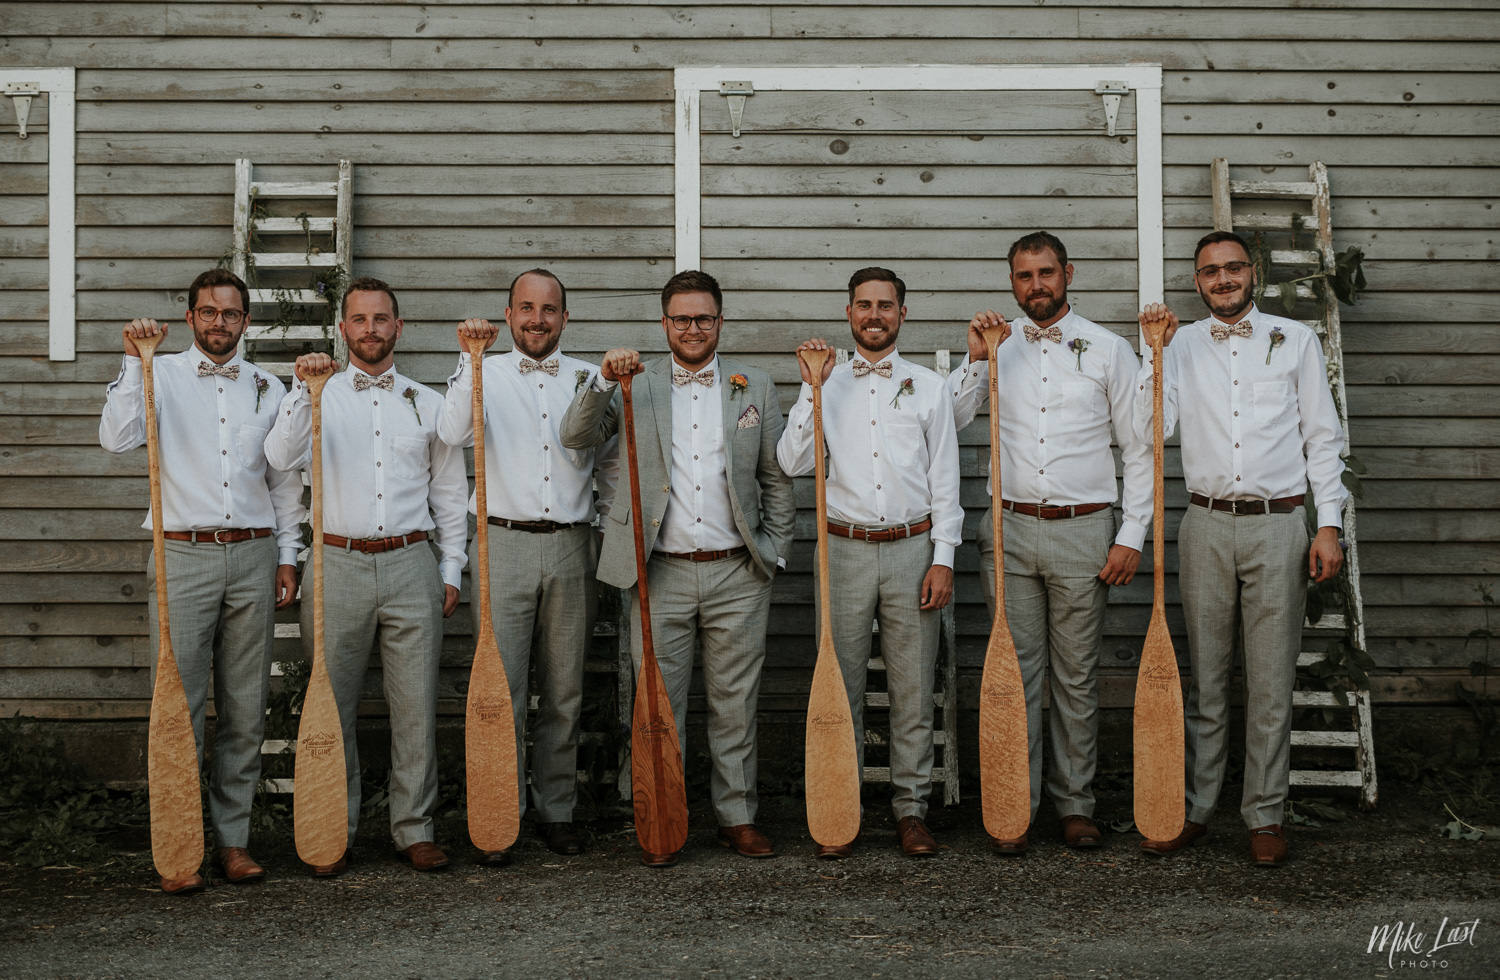 Groom and groomsmen with matching paddles form bachelor party canoe trip.